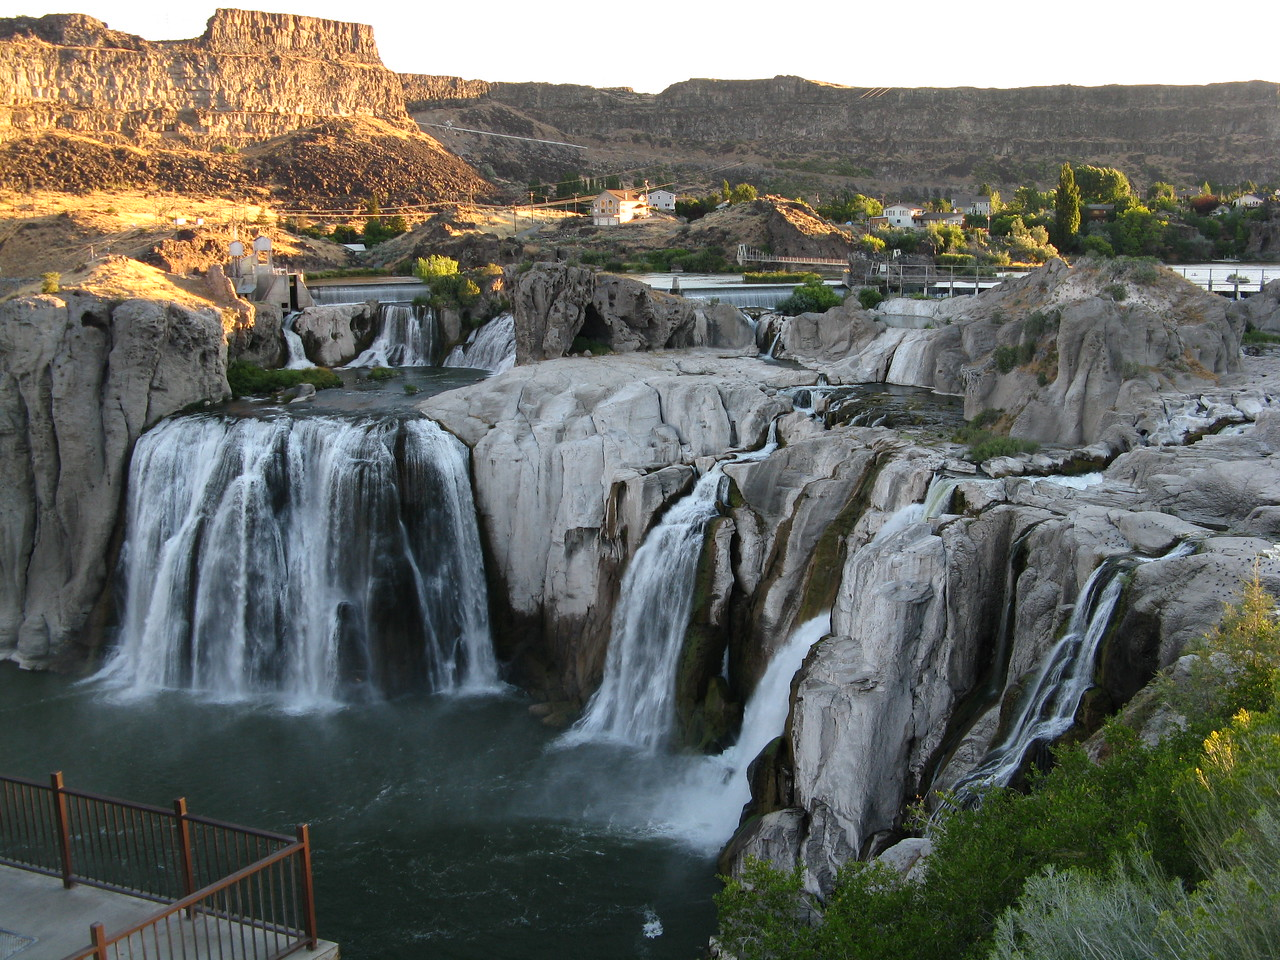 This is a last view of Shoshone Falls.